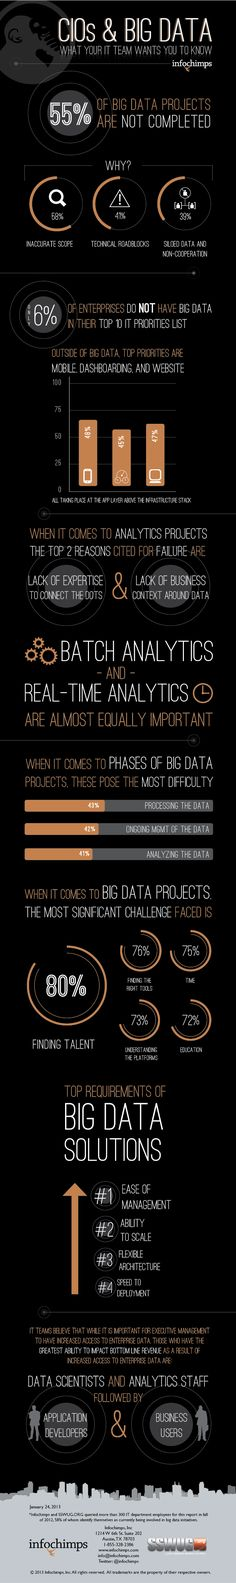 CIOs y Big Data #infografia #infographic #internet